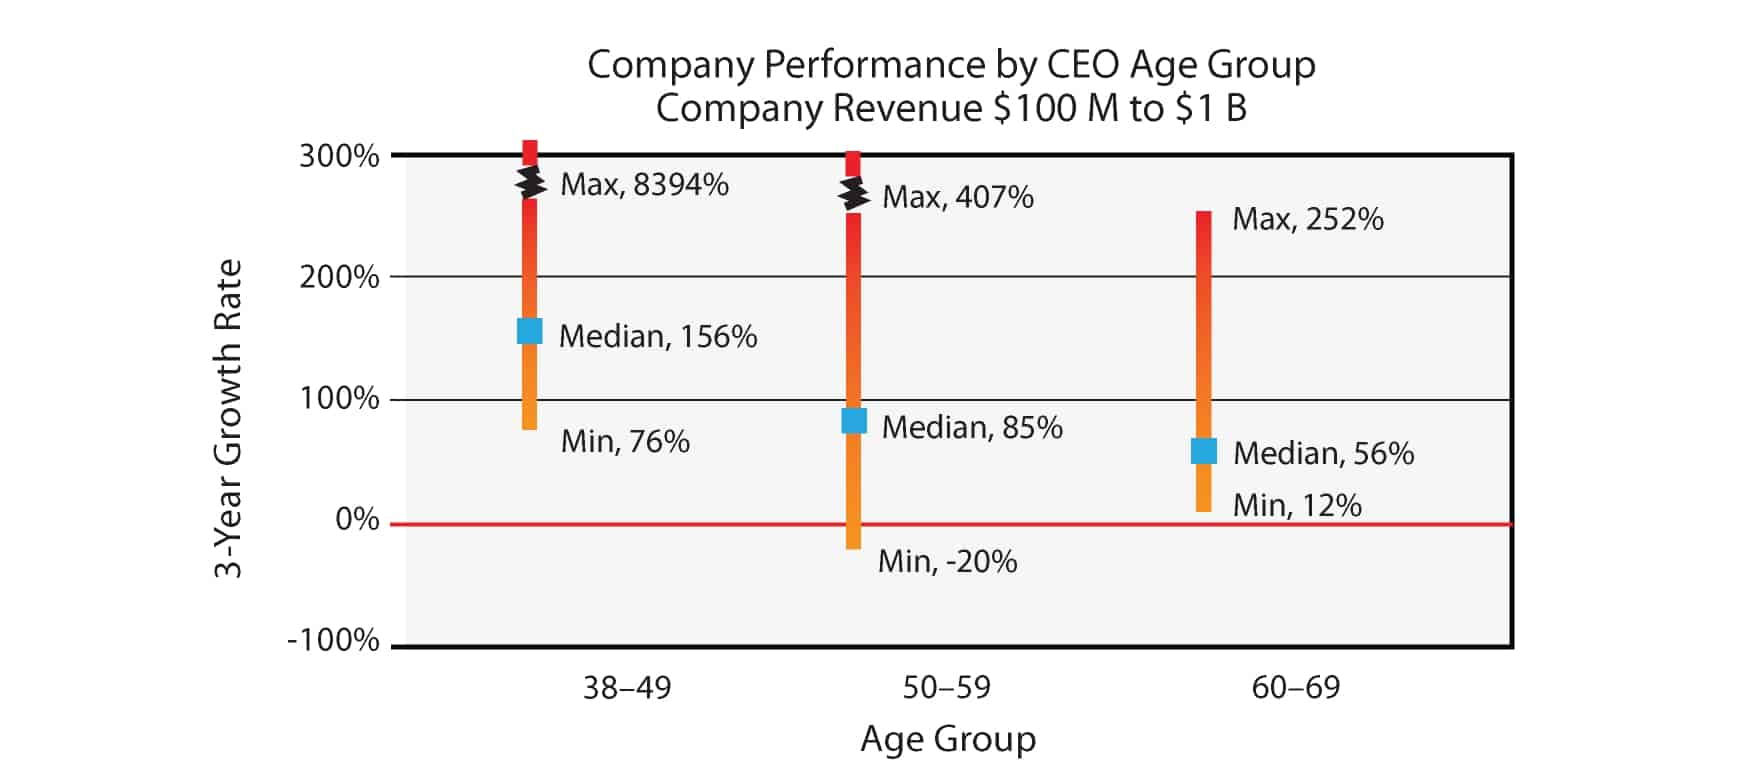 Company performance by CEO age group